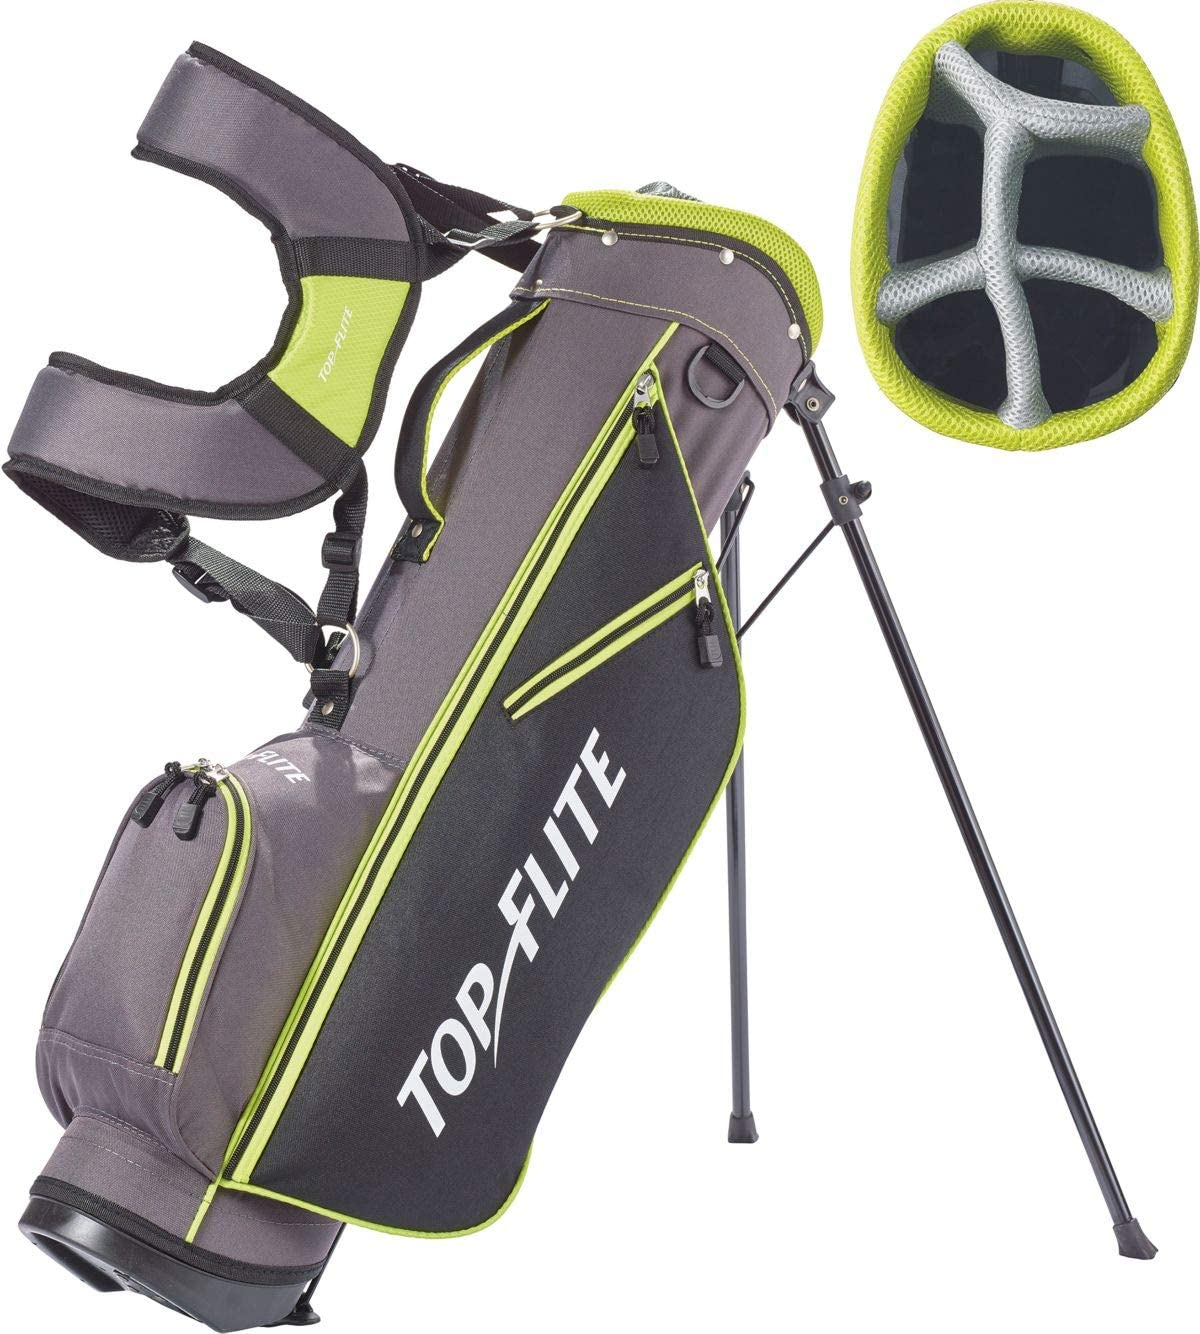 Top Flite Junior Boys Complete Golf Club Set Ages 9-12 or 53 up Kids Set